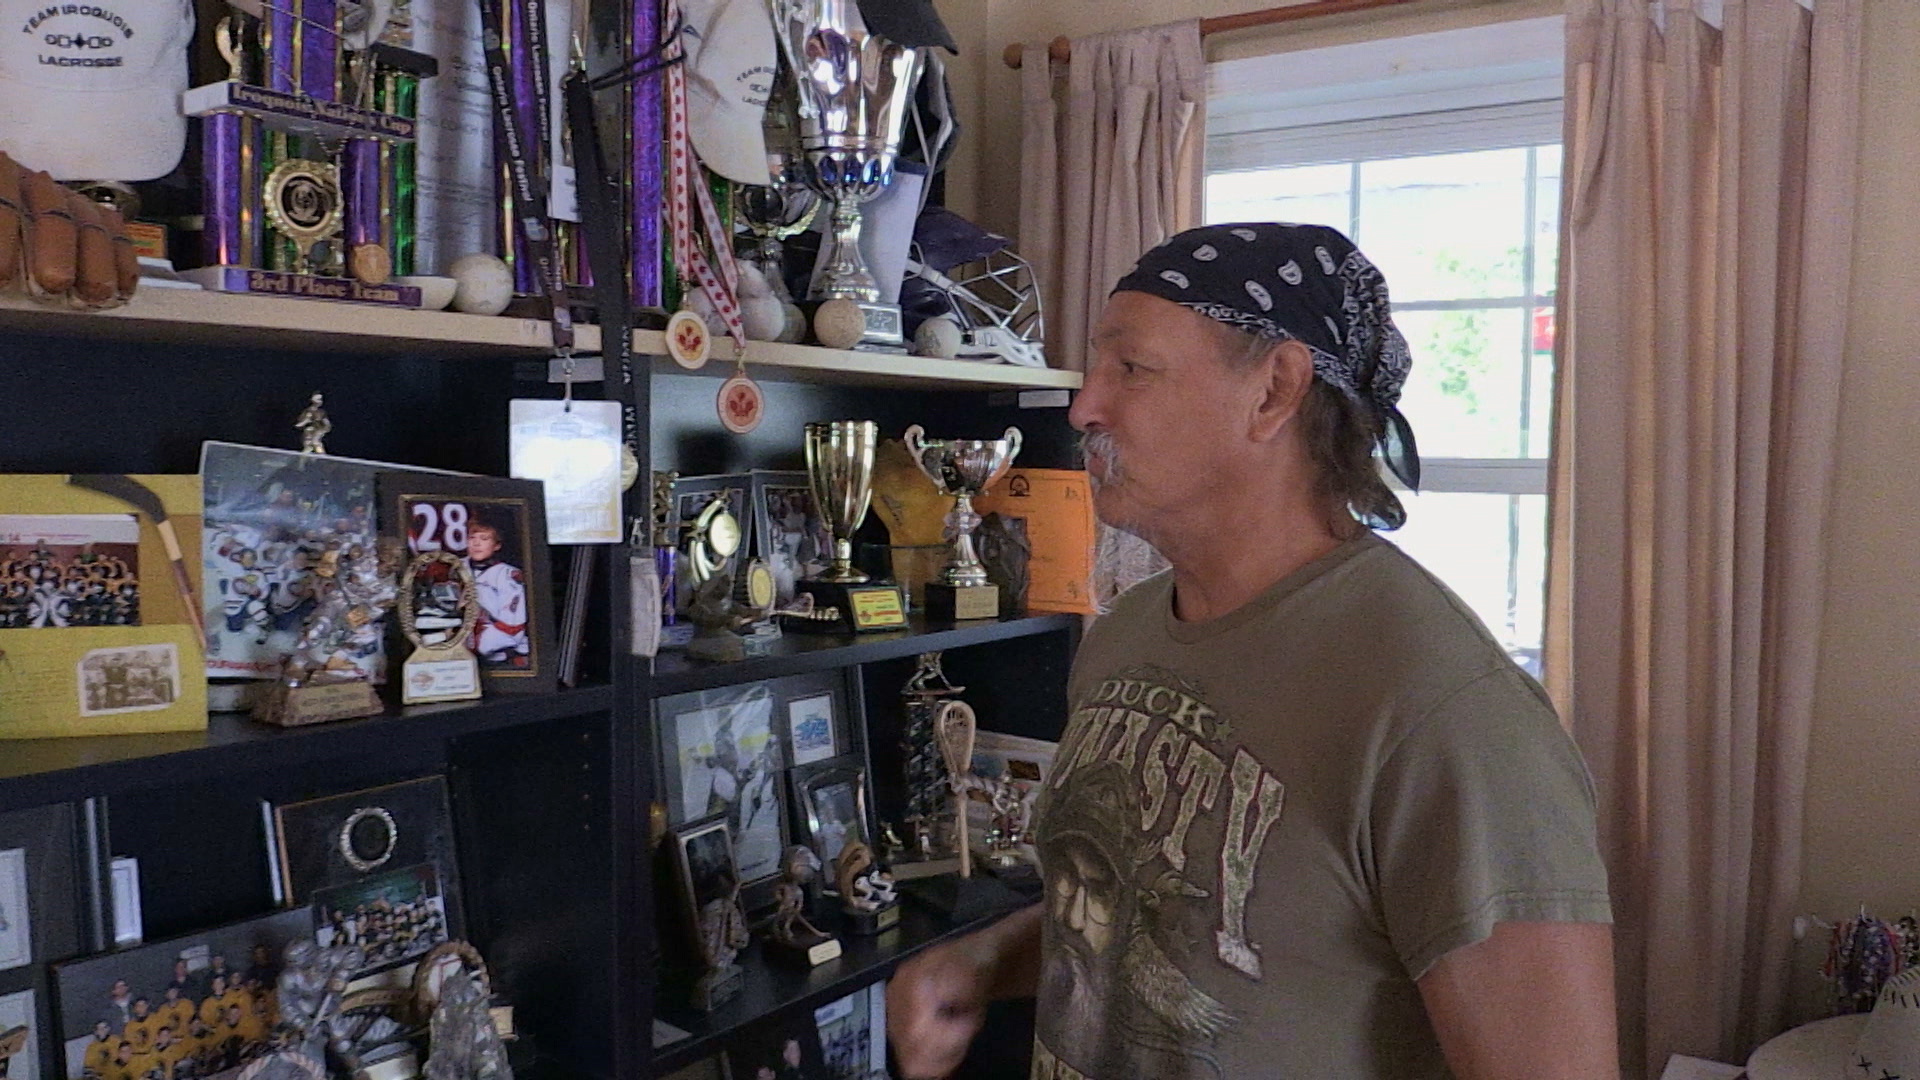 Dirt and his trophies.  1920 x 1080 film still.